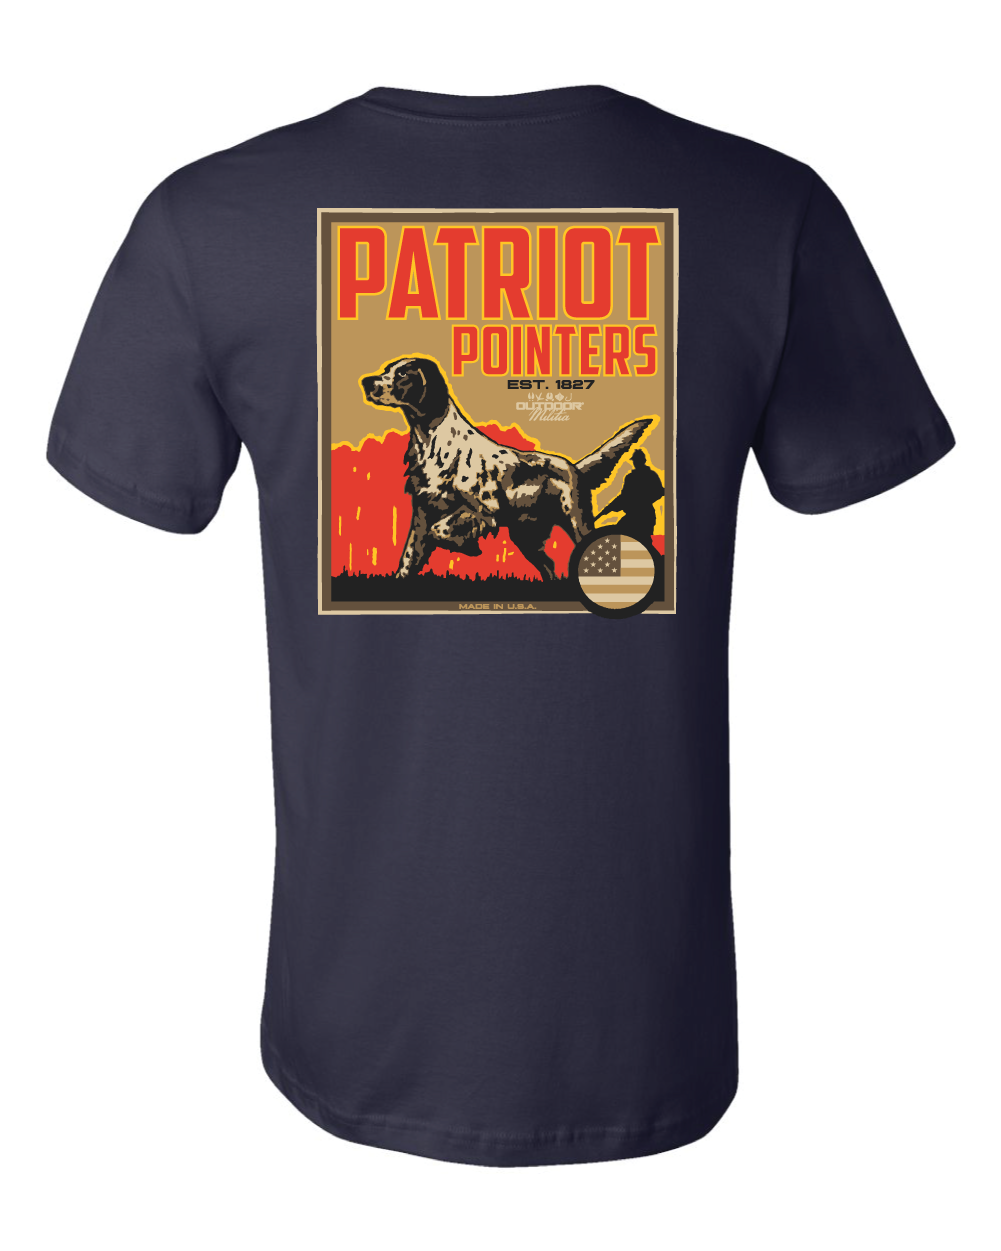 Patriot Pointers - Outdoor Militia®